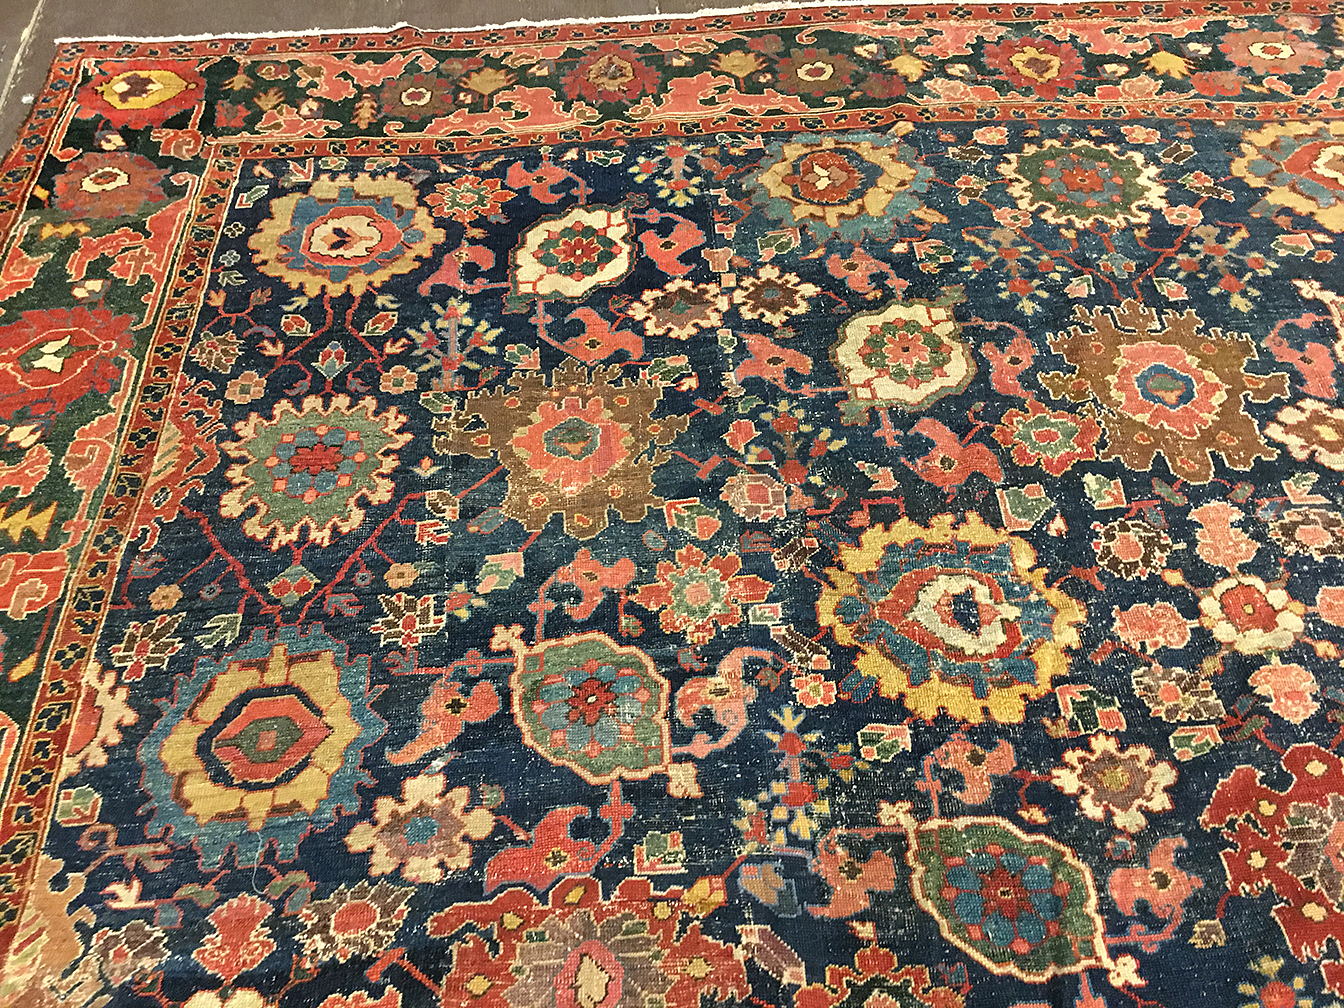 Antique kurdish Carpet - # 80056